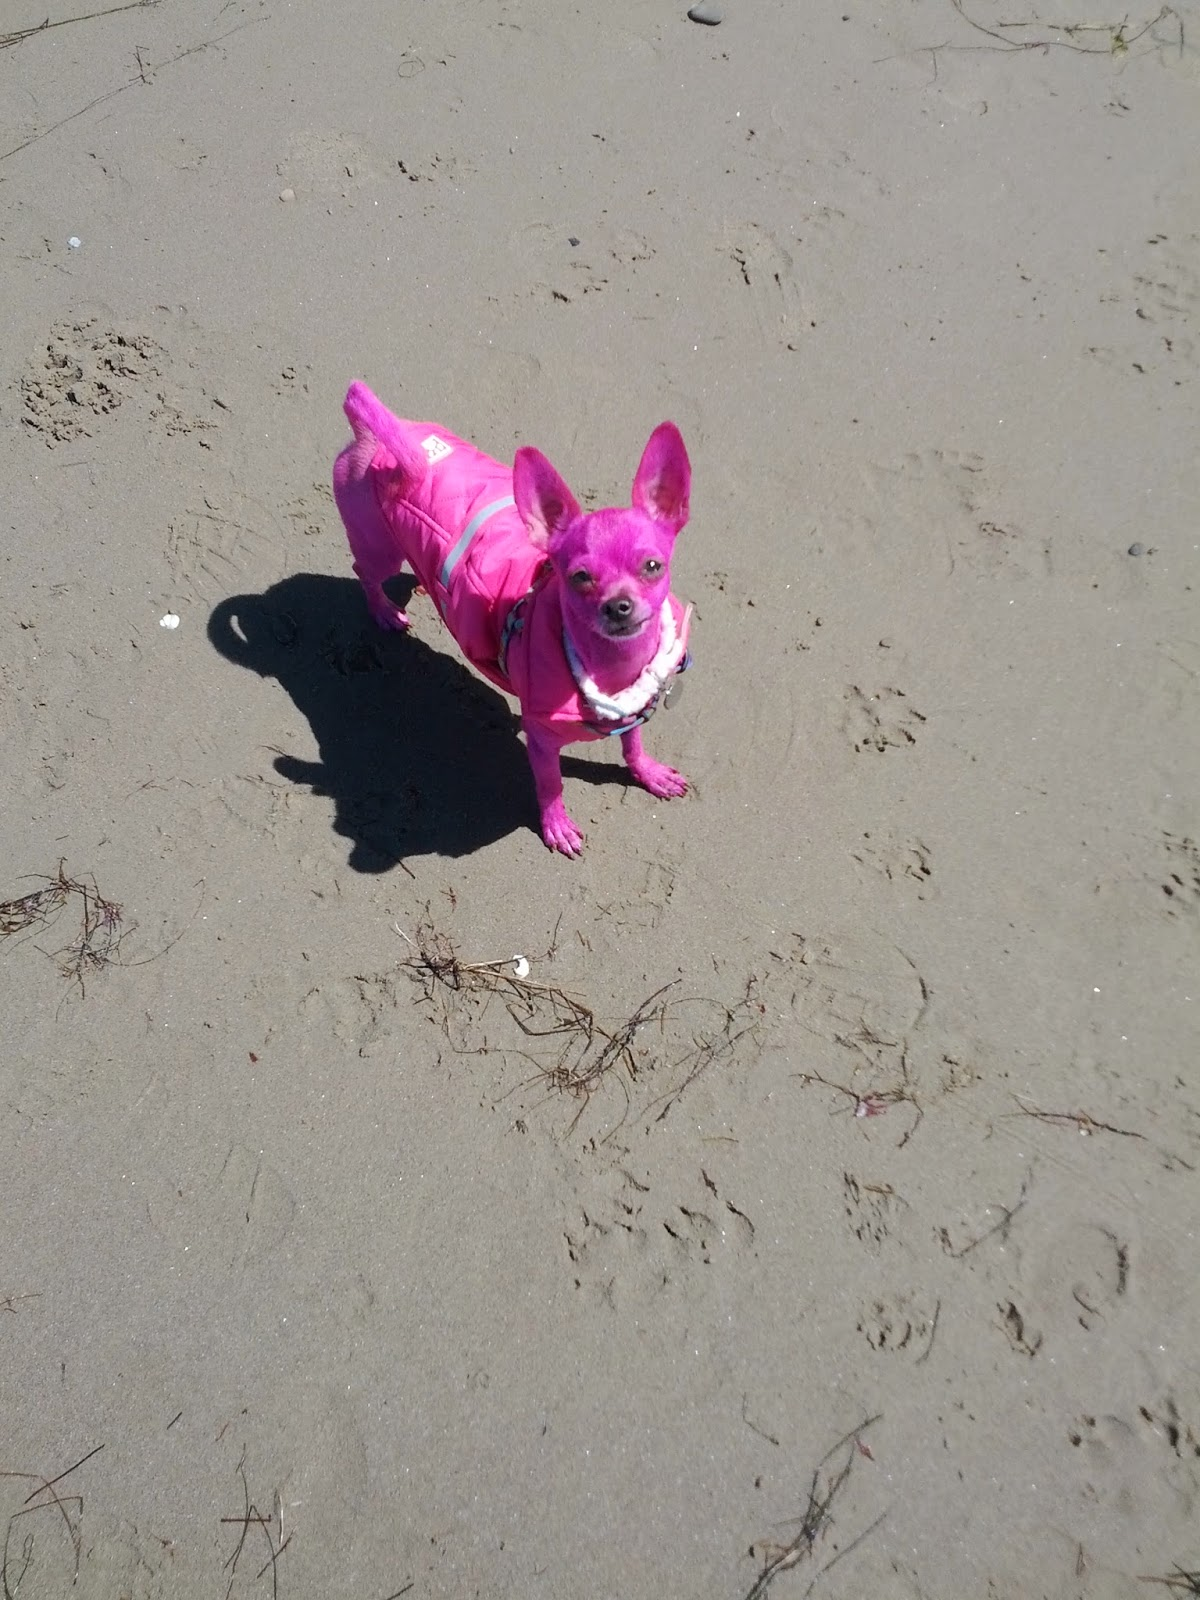 The Dog Geek: So I Dyed My Dog Pink